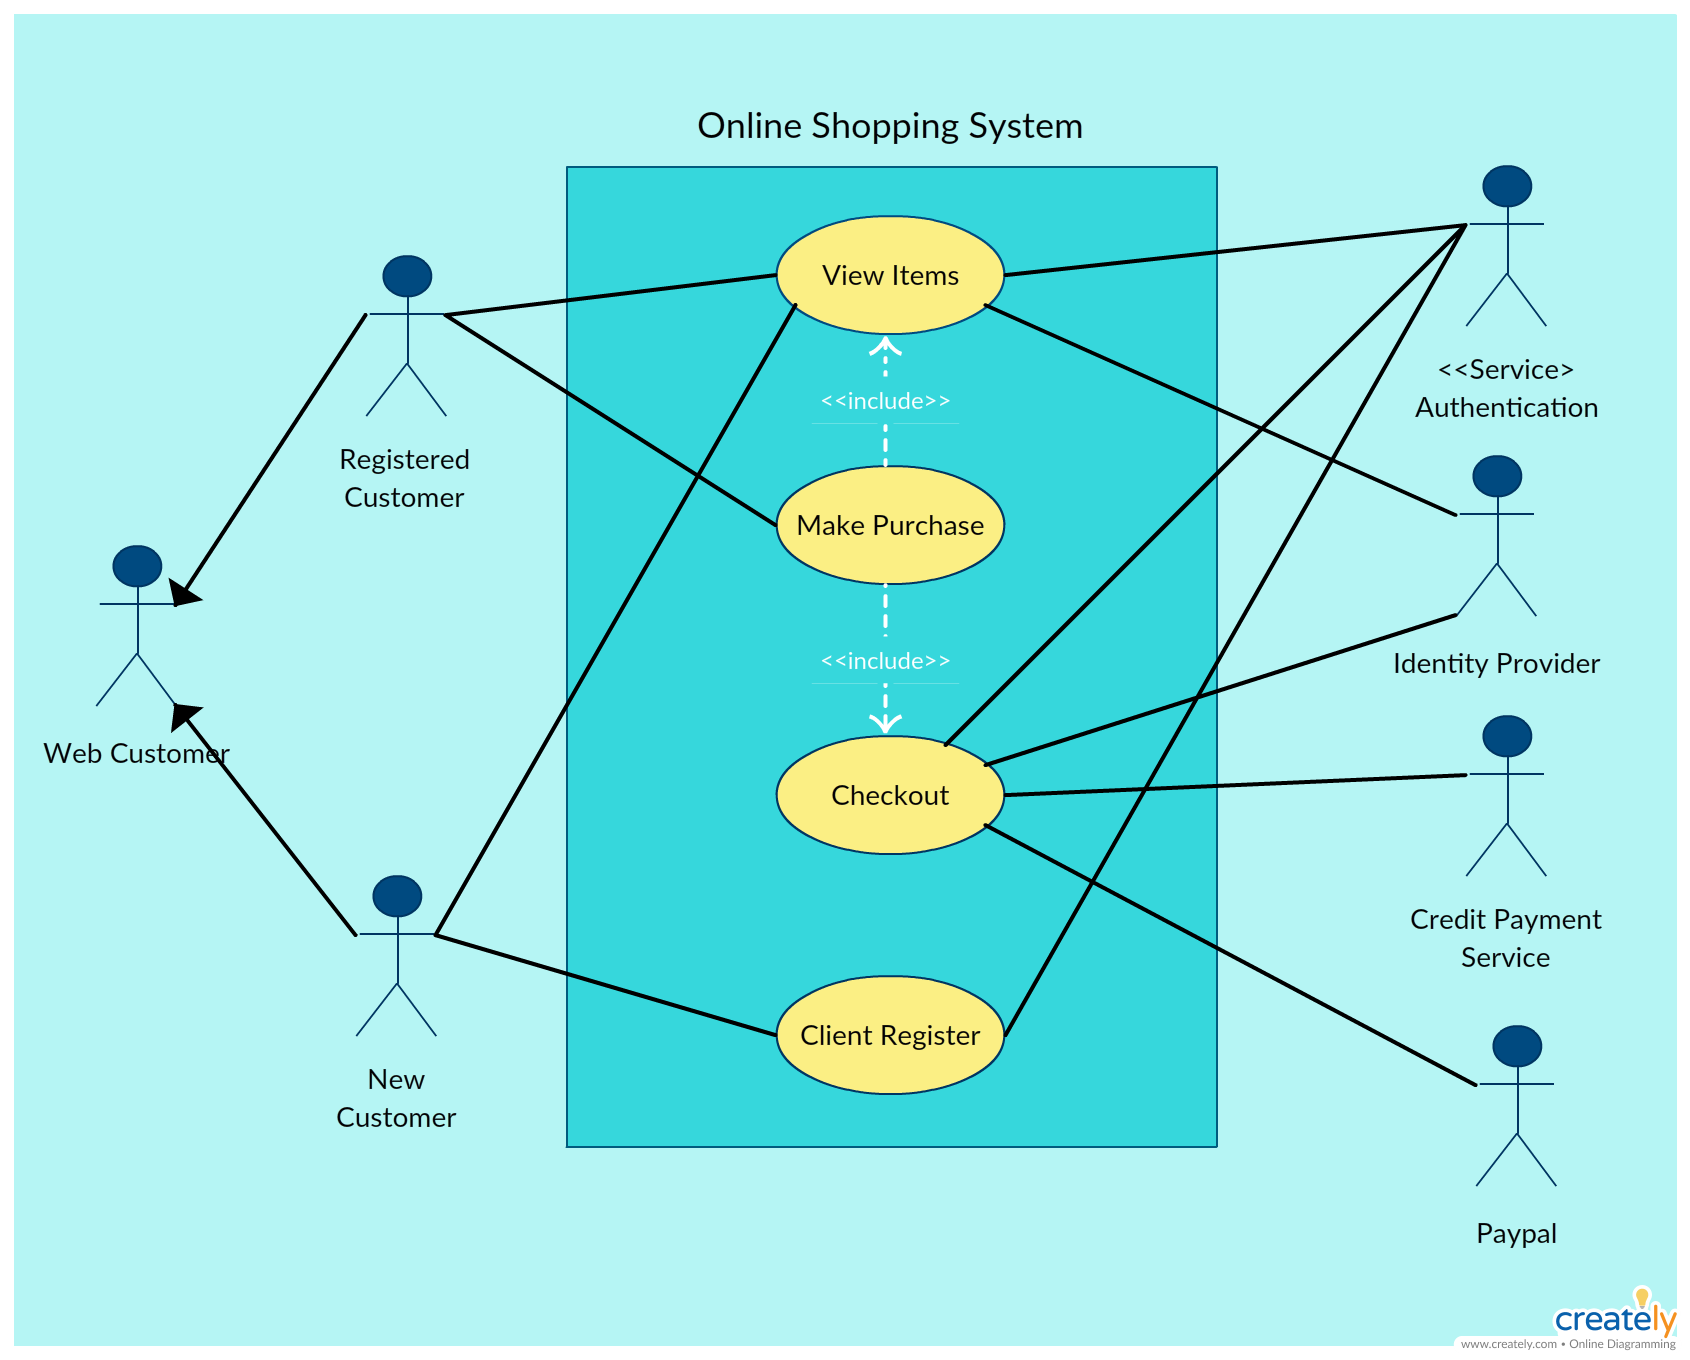 online shopping system use case diagram use case diagram for online shopping system is used to understand different roles actors of various levels  [ 1690 x 1360 Pixel ]